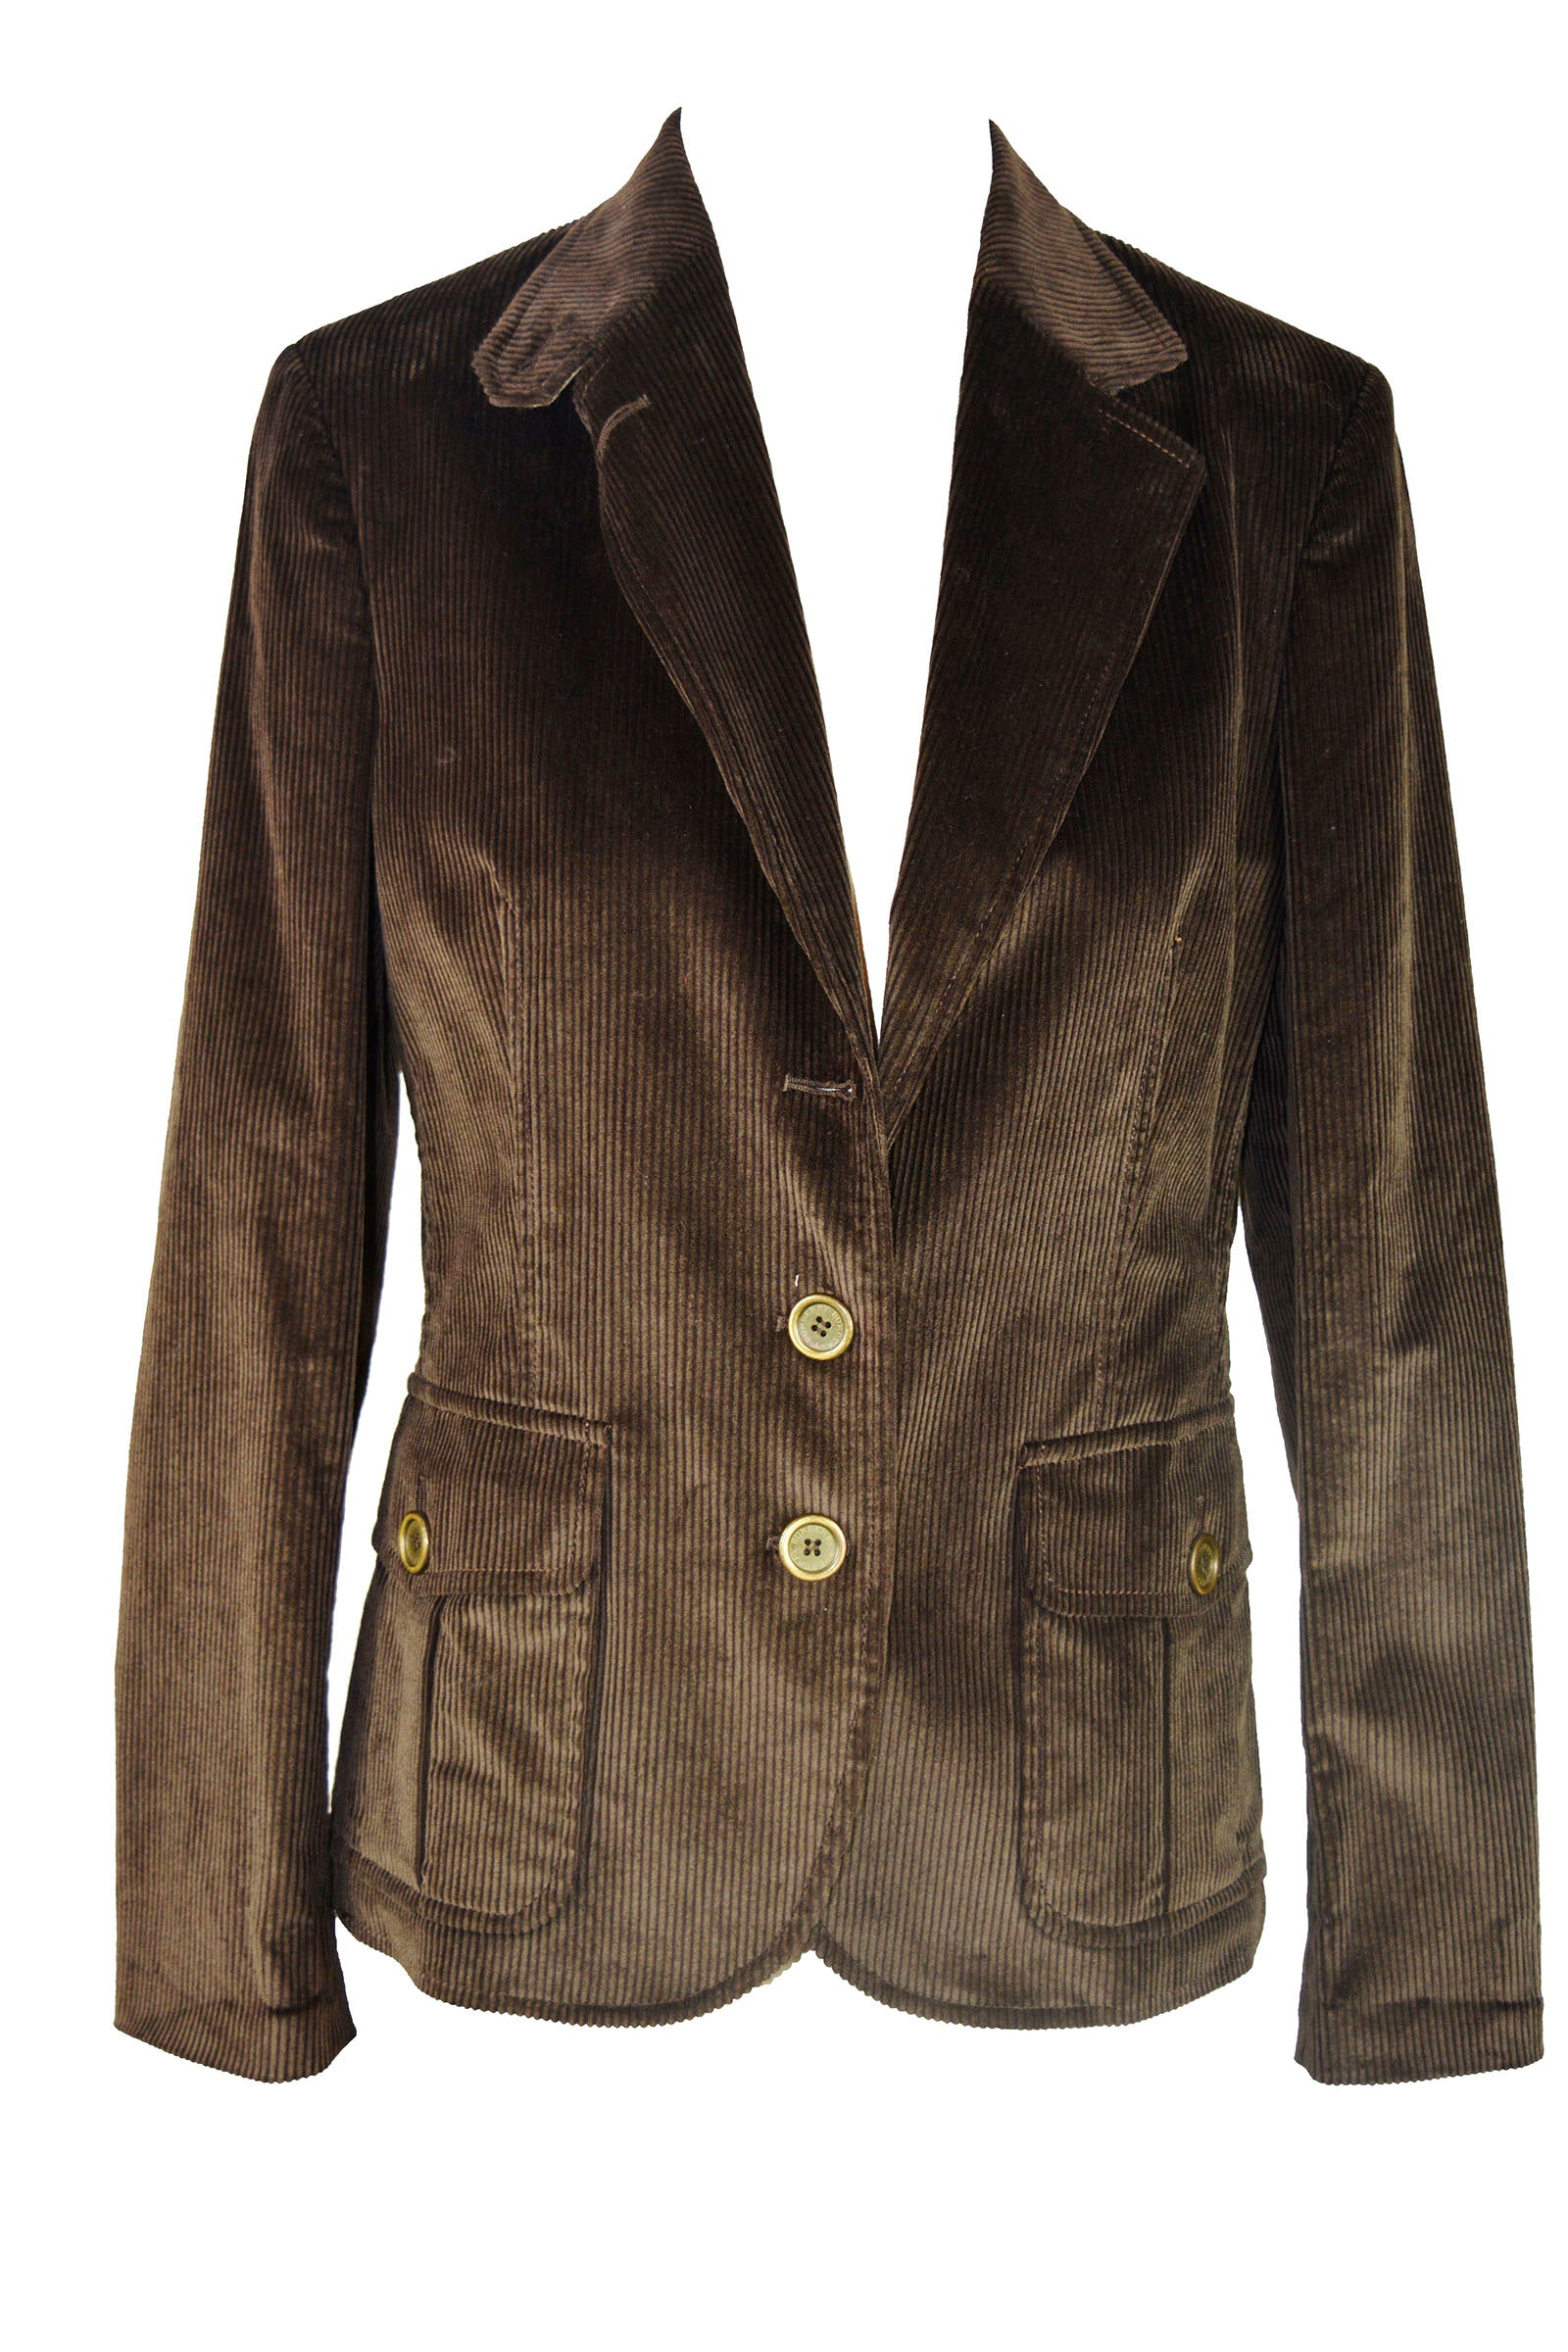 Burberry Brown Blazer in Corduroy Size 42 (EU)